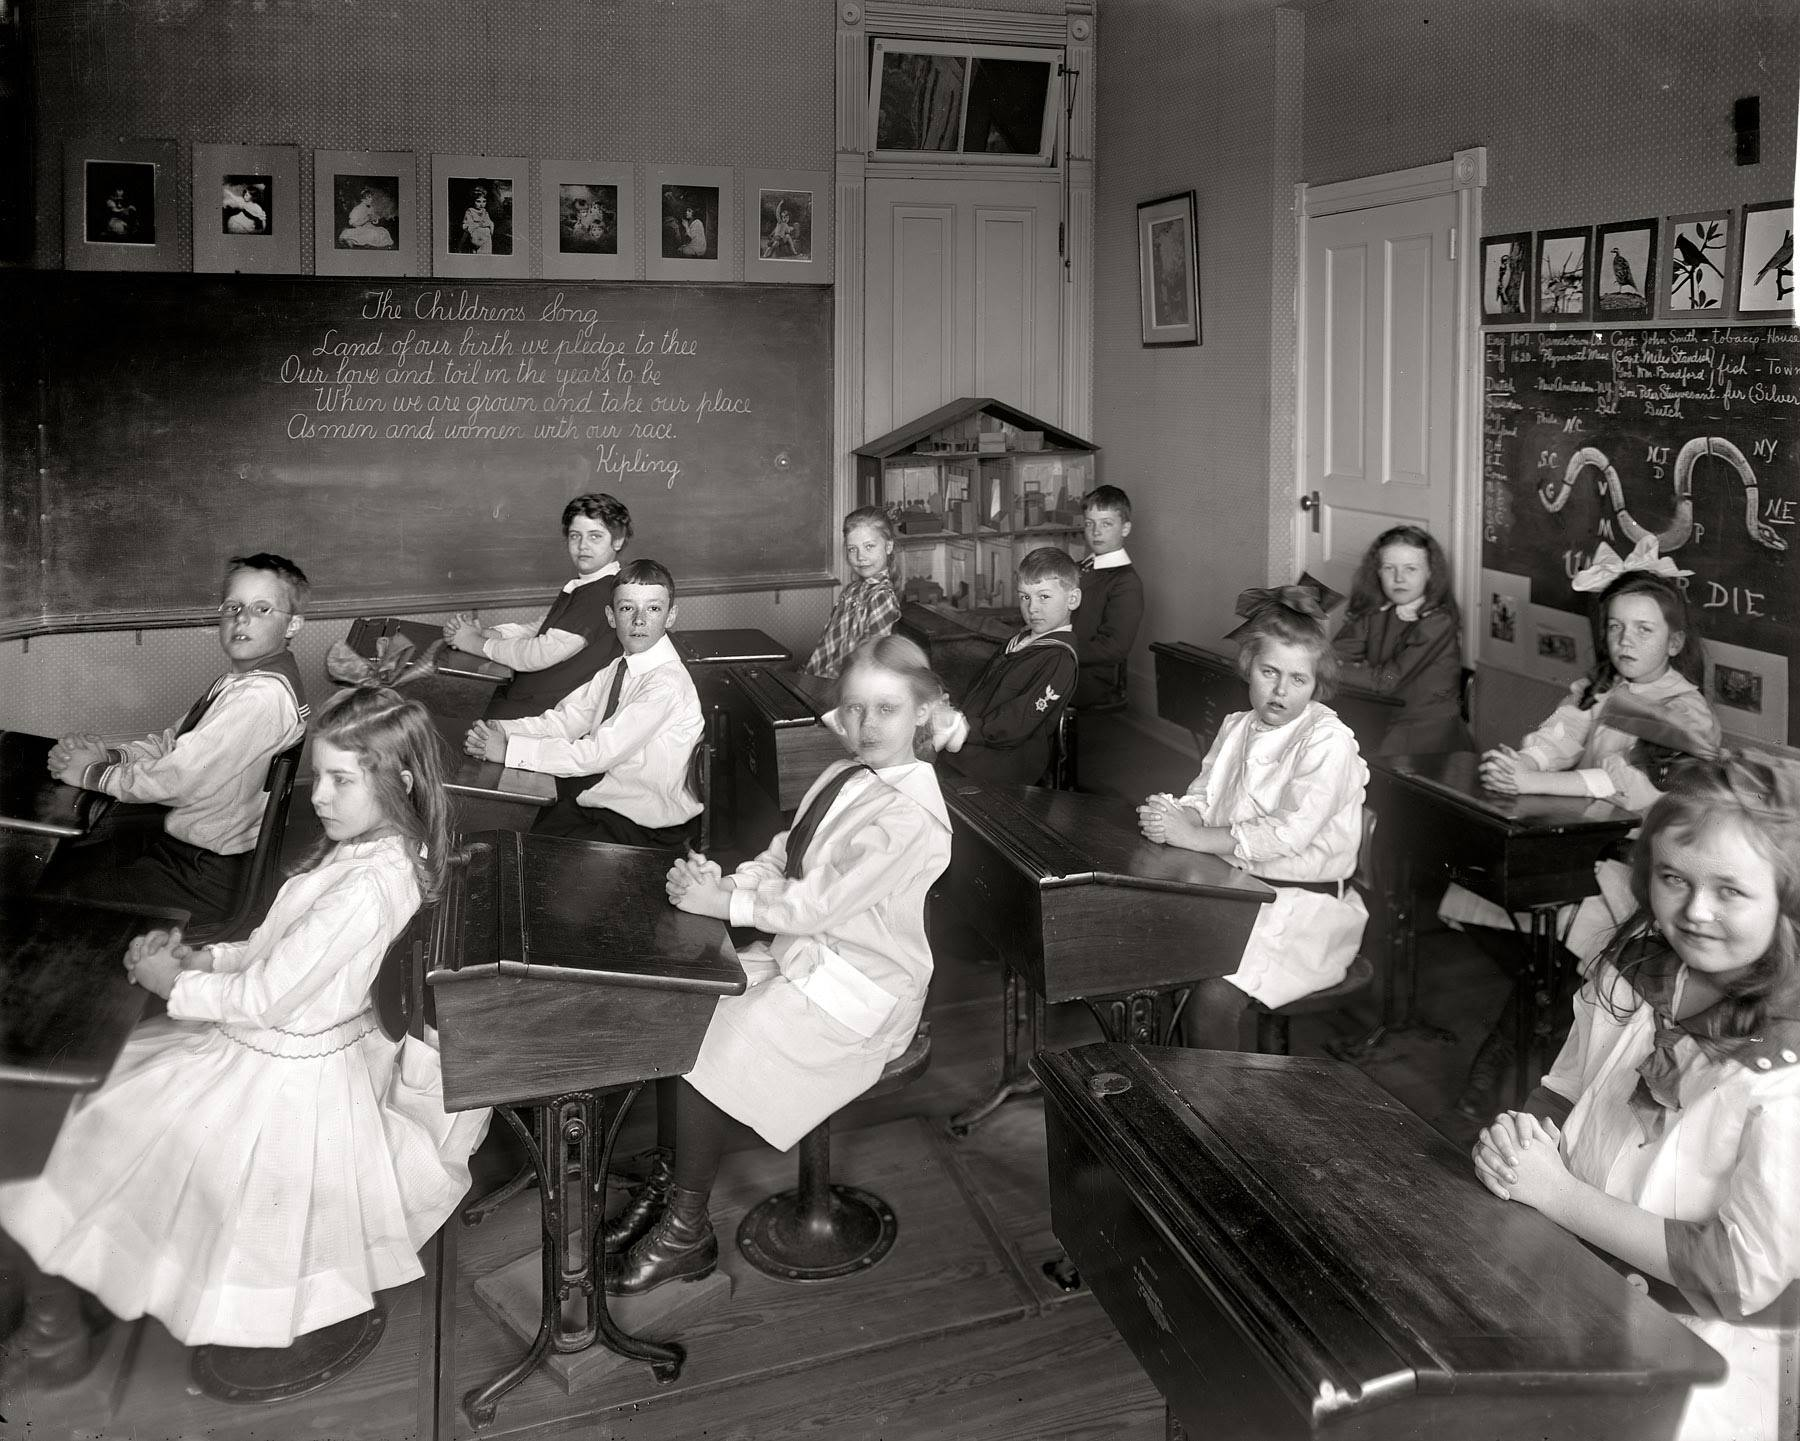 Welcome to school in 1910. (Washington D.C.)